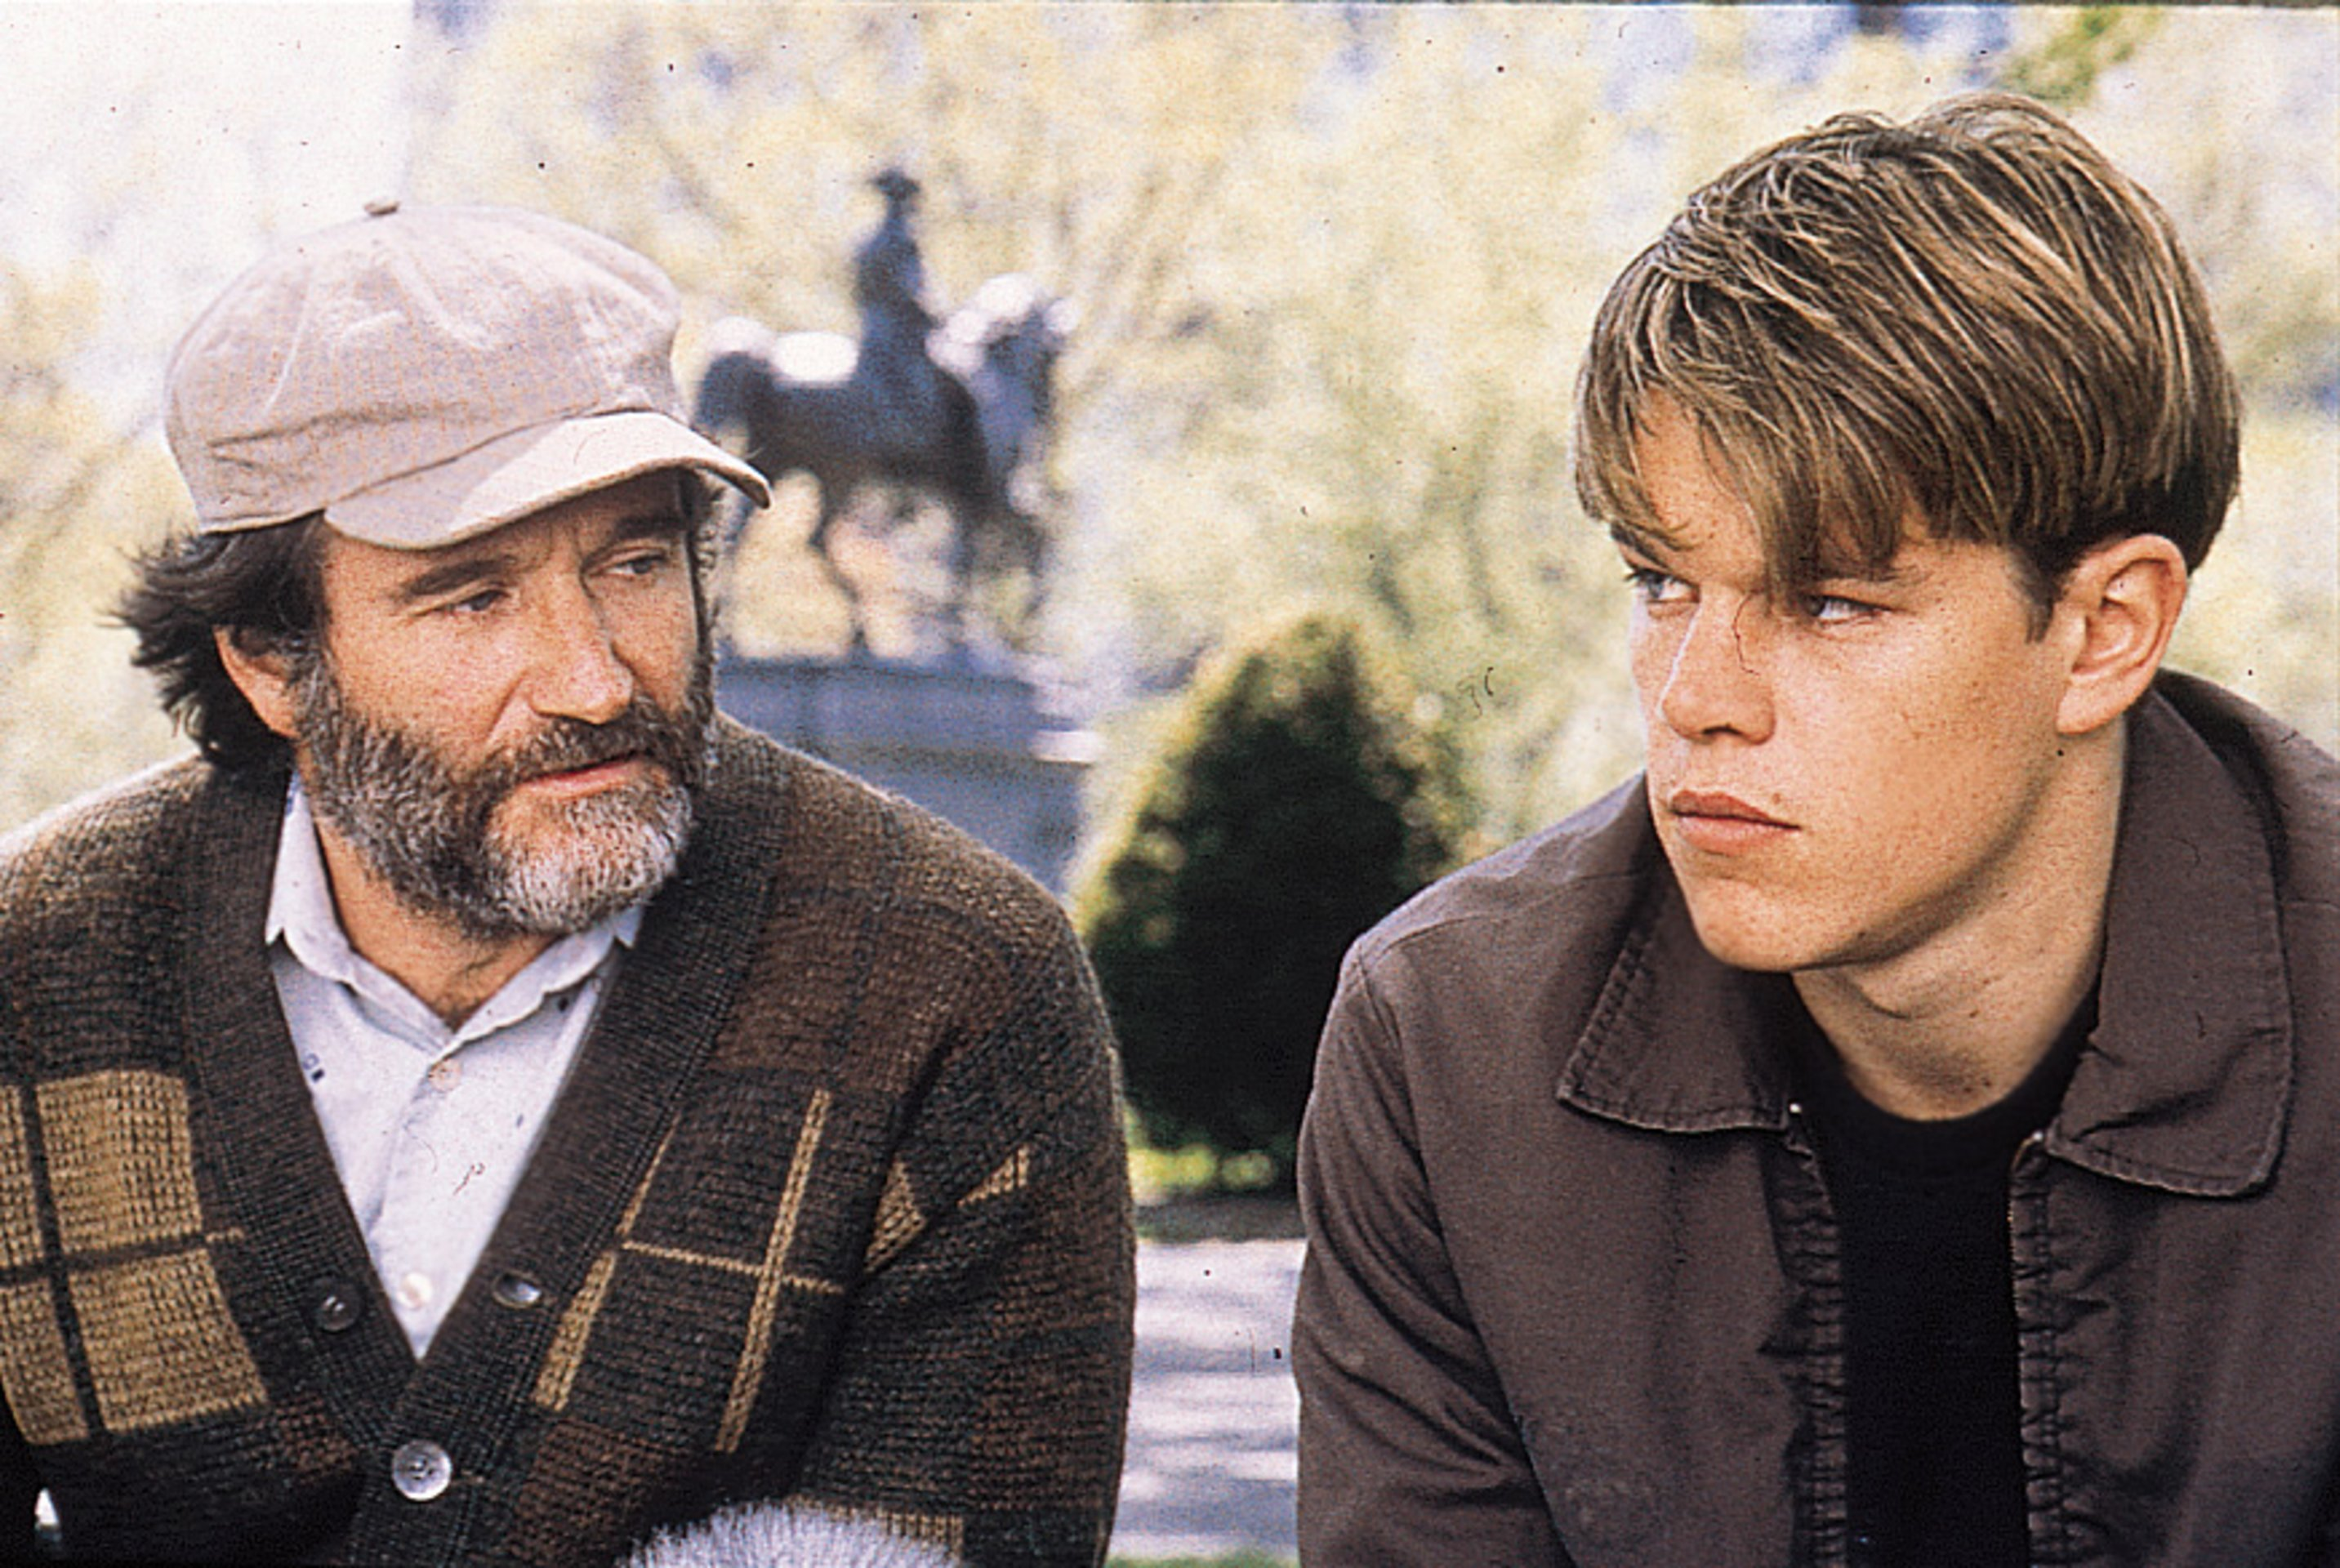 an analysis of the movie good will hunting Free college essay good will hunting this paper will discuss the relationship between will hunting and the psychologist sean mcguire in the movie good will hunting.